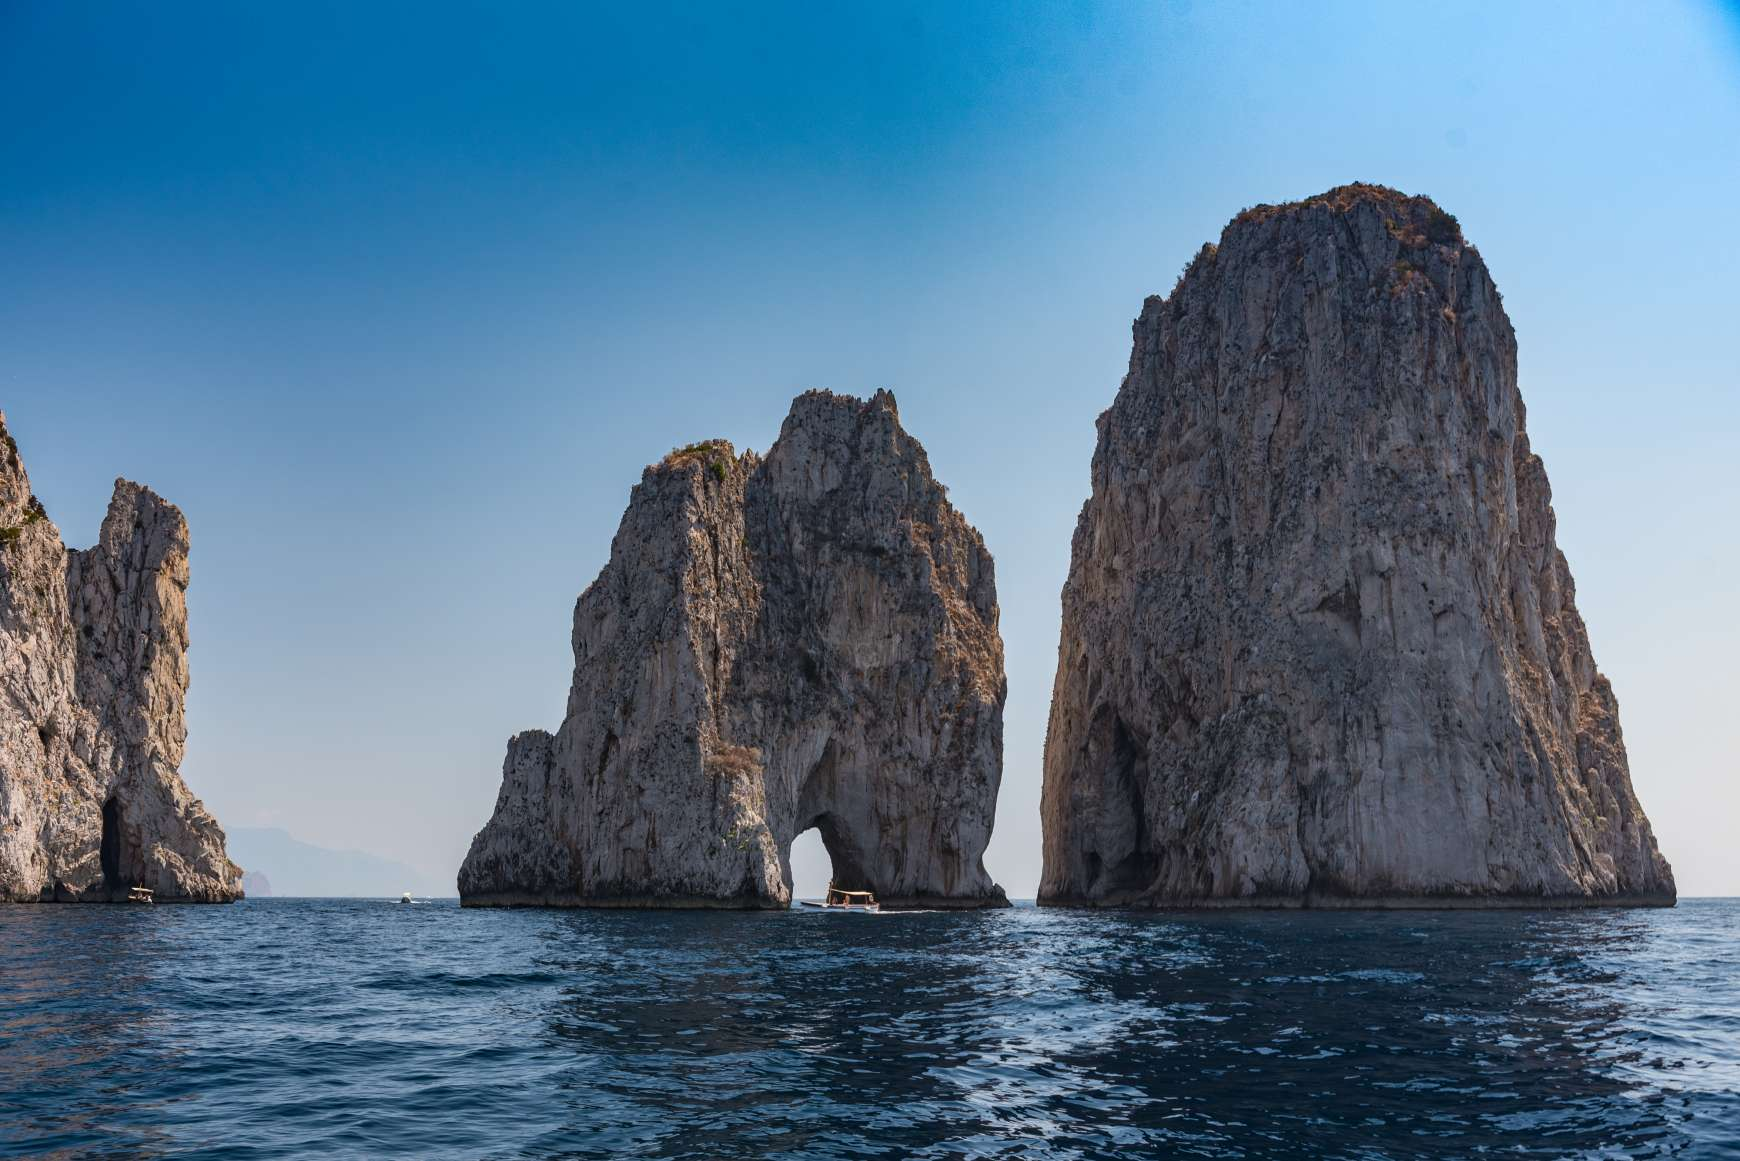 The three Faraglioni rocks of Capri jutting out from the sea